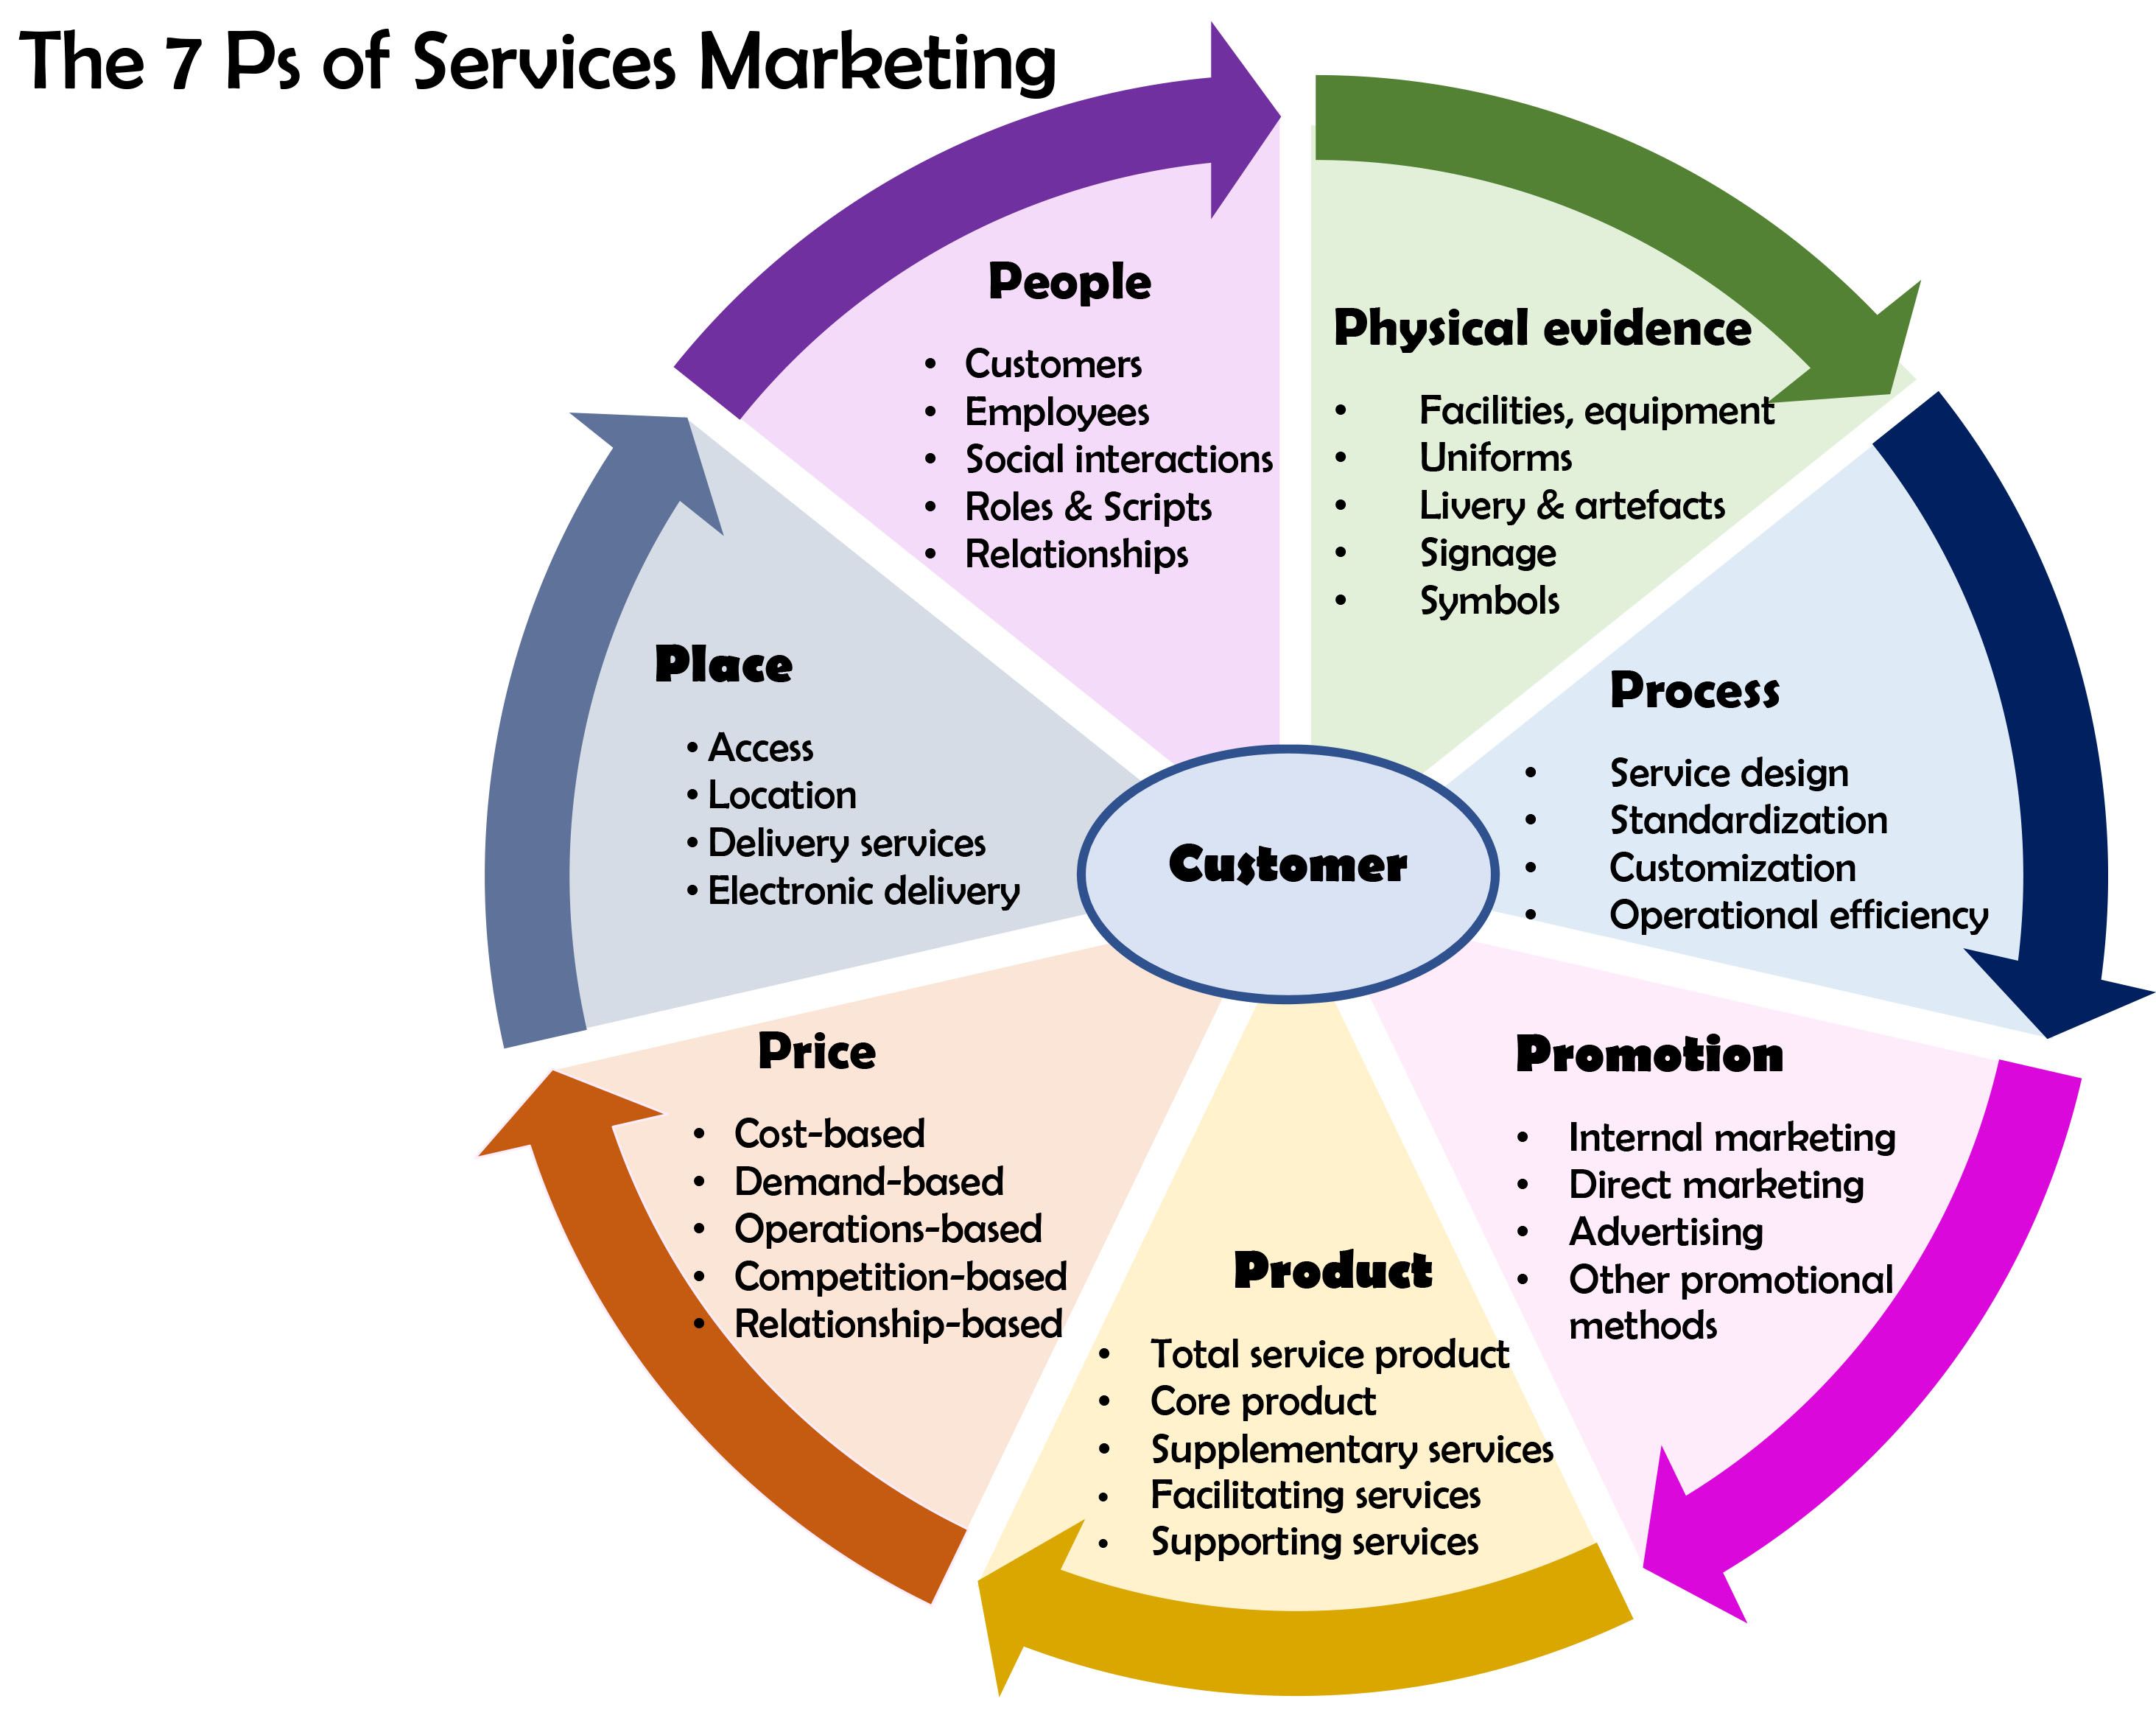 Simple Business Organizational Chart: Services marketing - Wikipedia,Chart